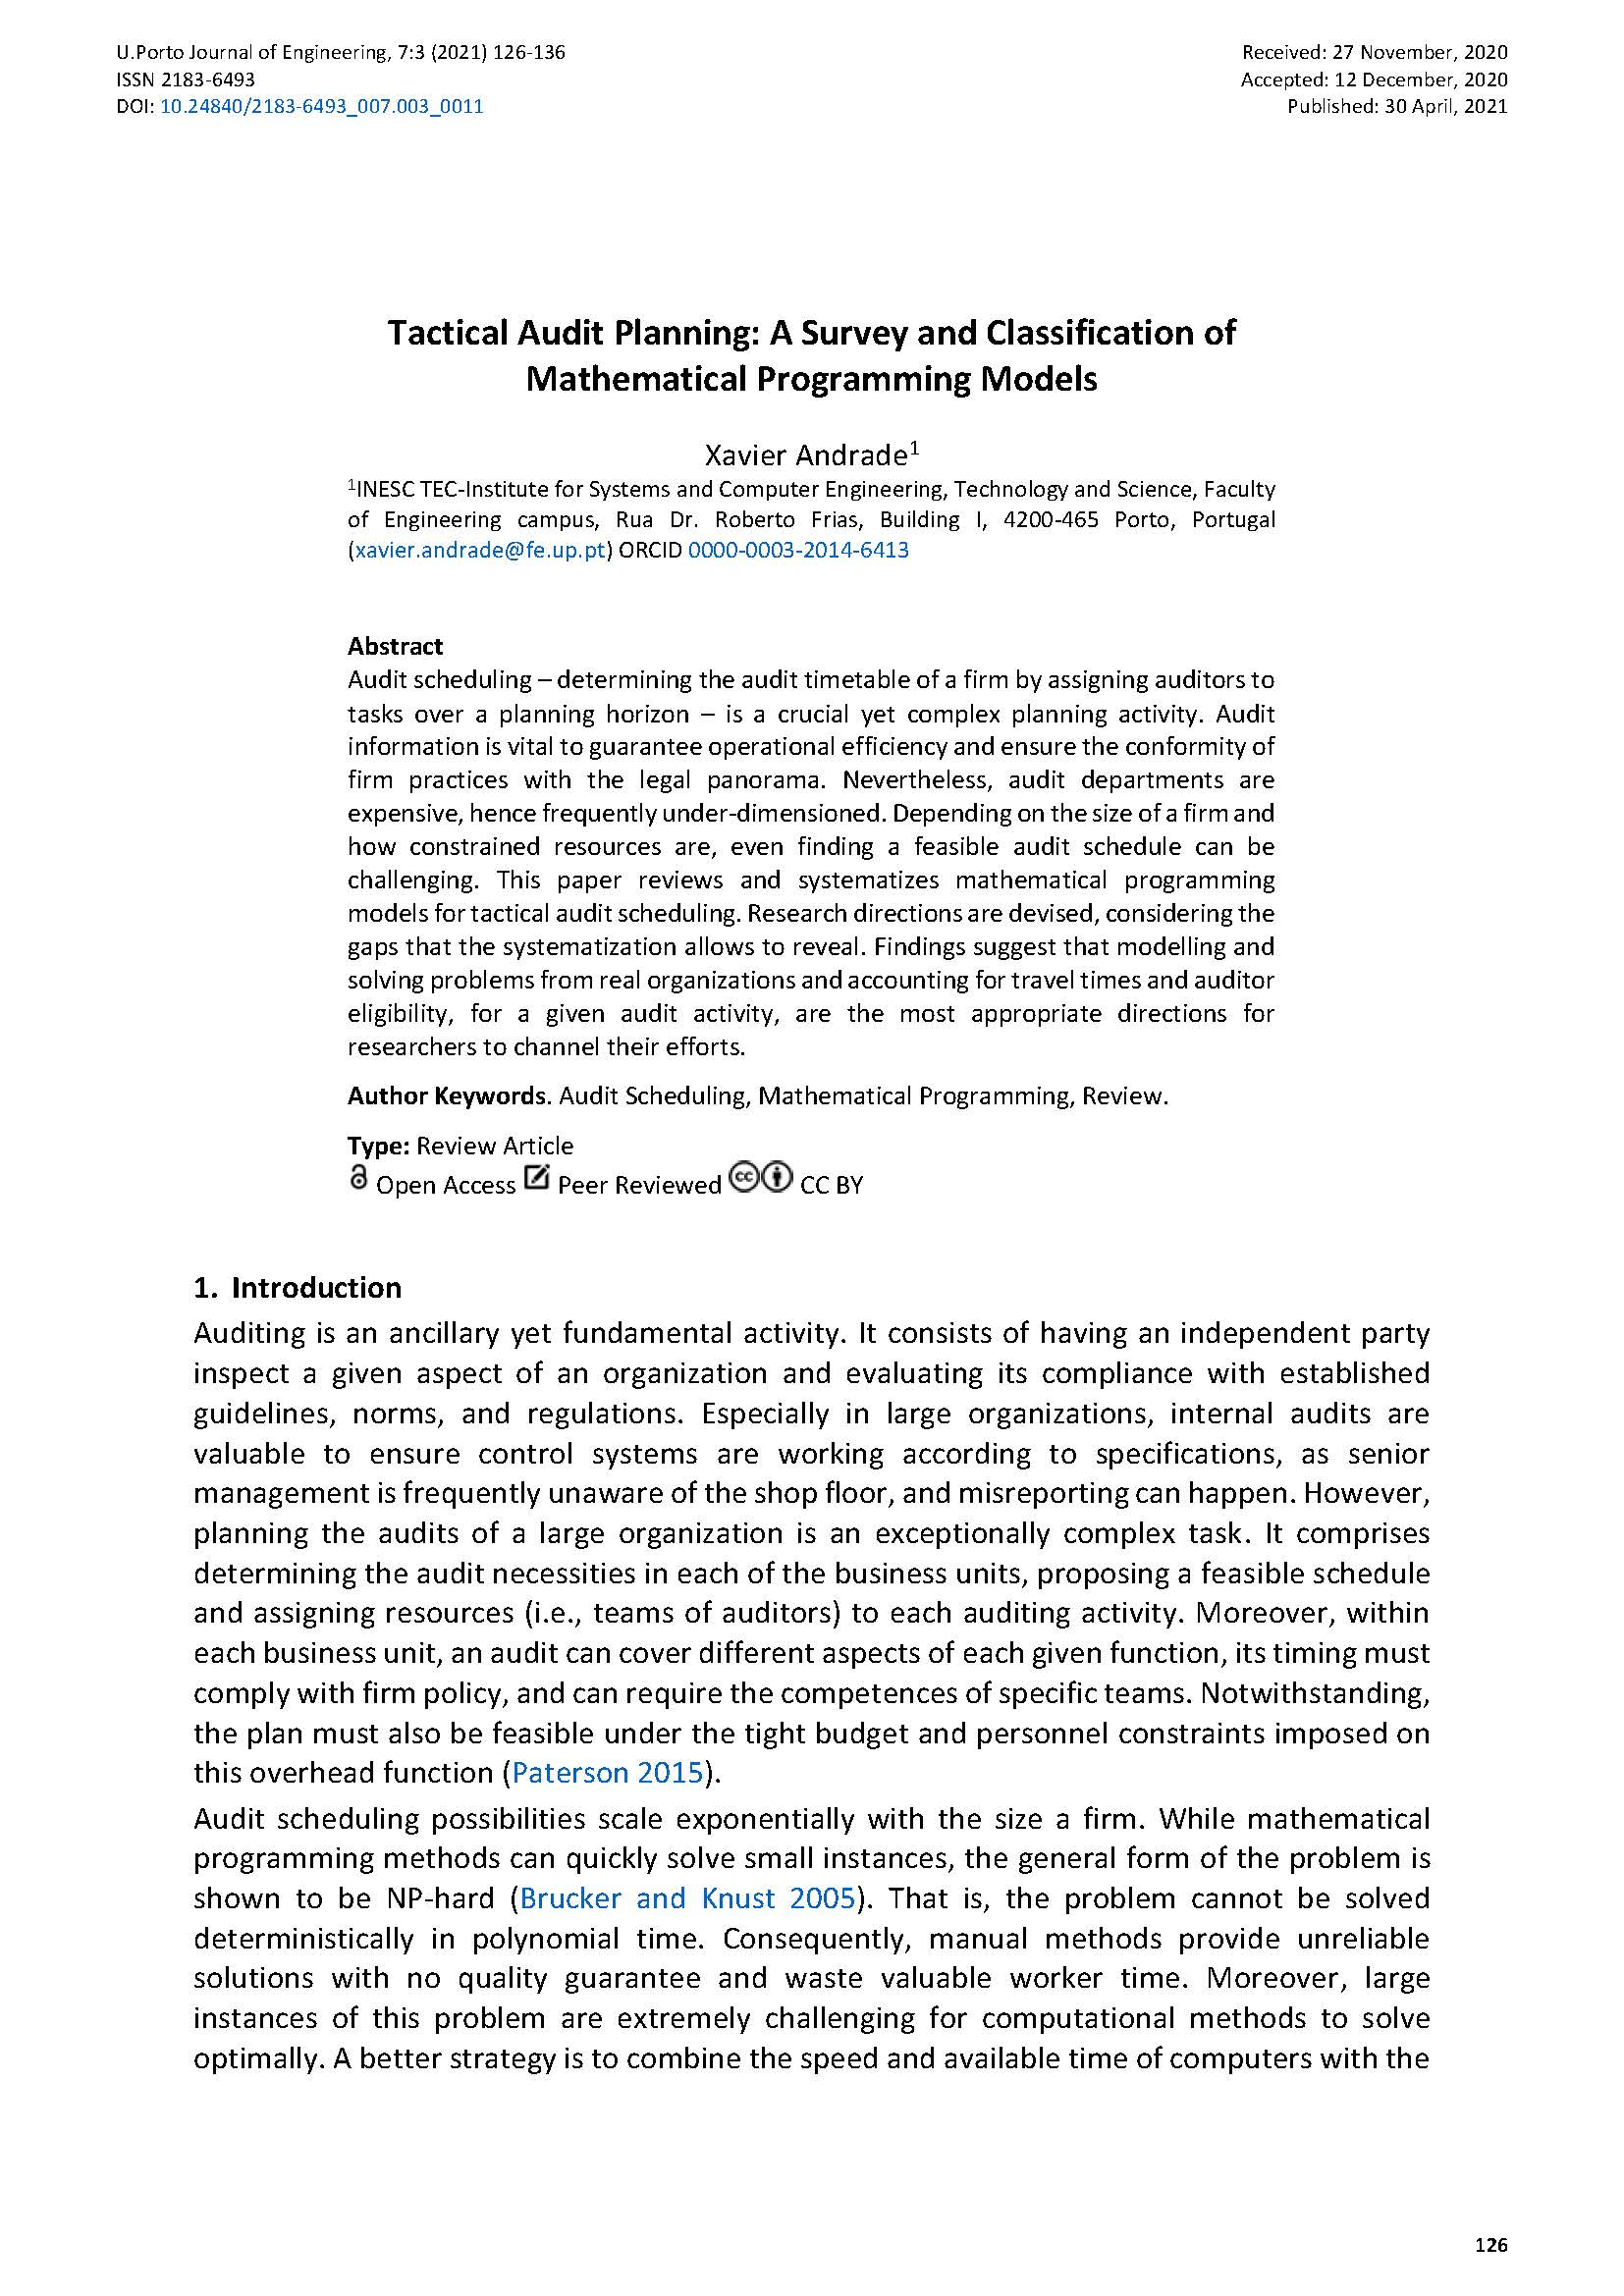 Tactical Audit Planning: A Survey and Classification of Mathematical Programming Models